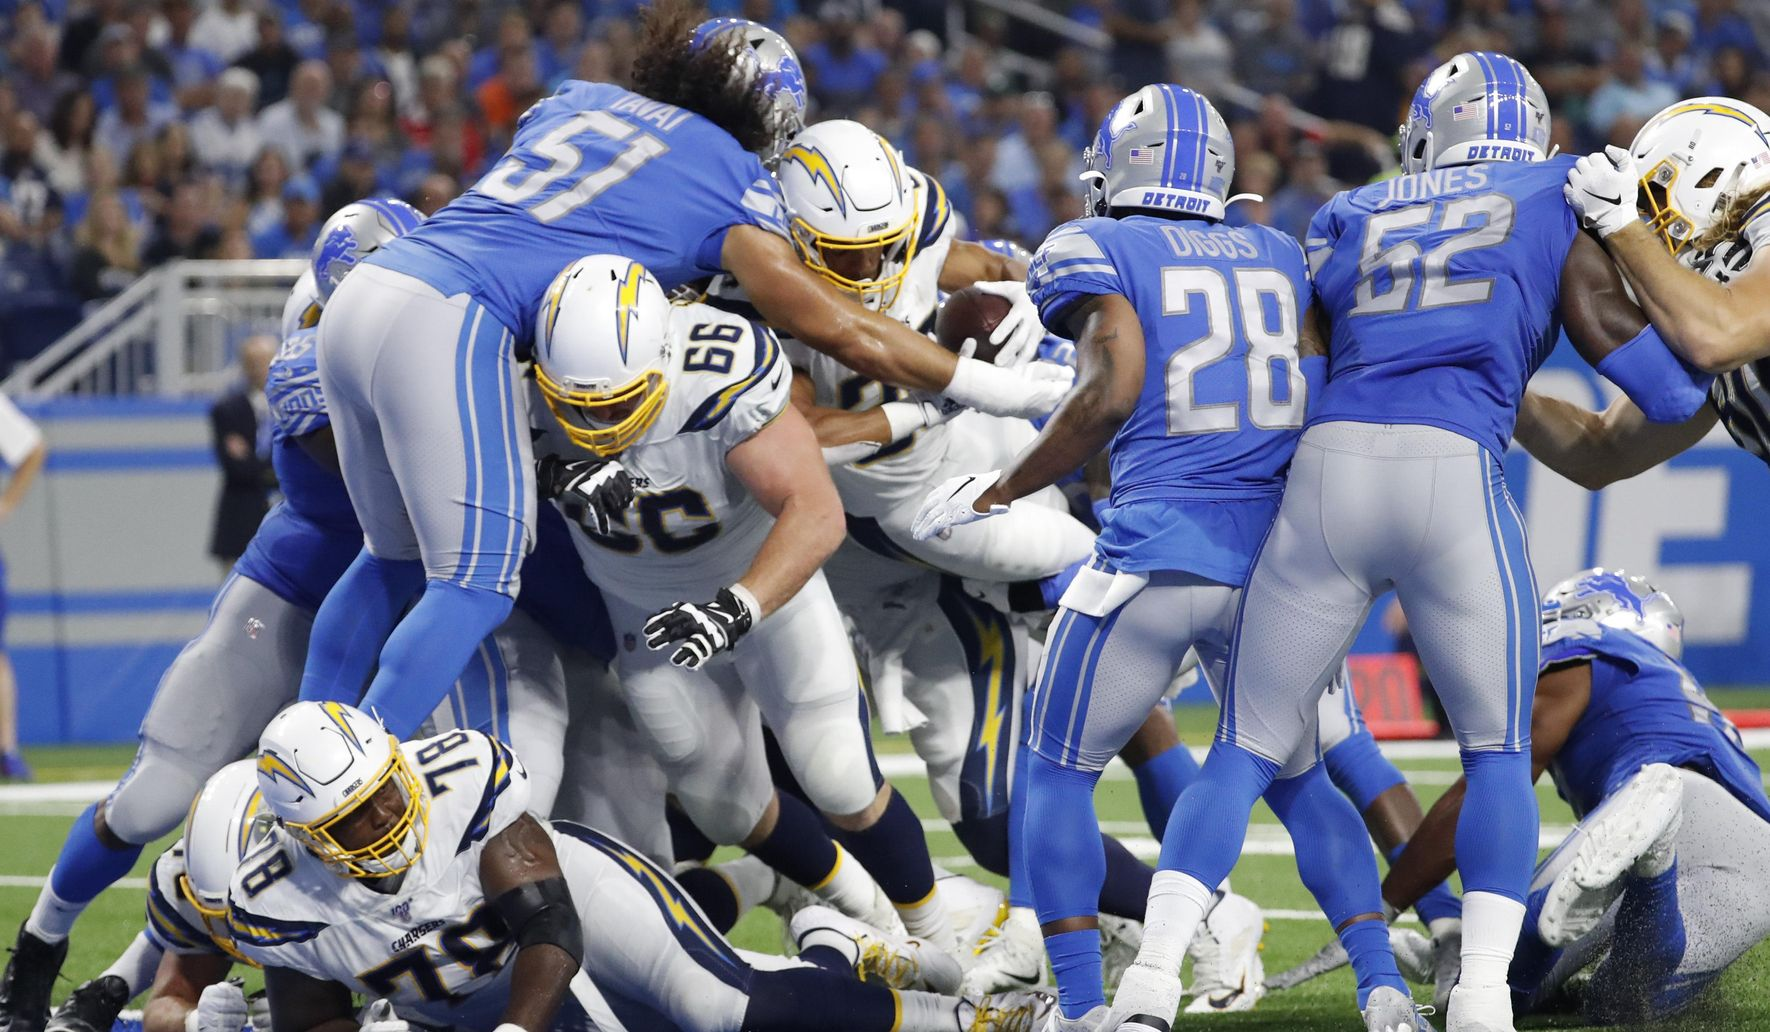 Chargers_lions_football_76310_c0-169-4039-2523_s1770x1032